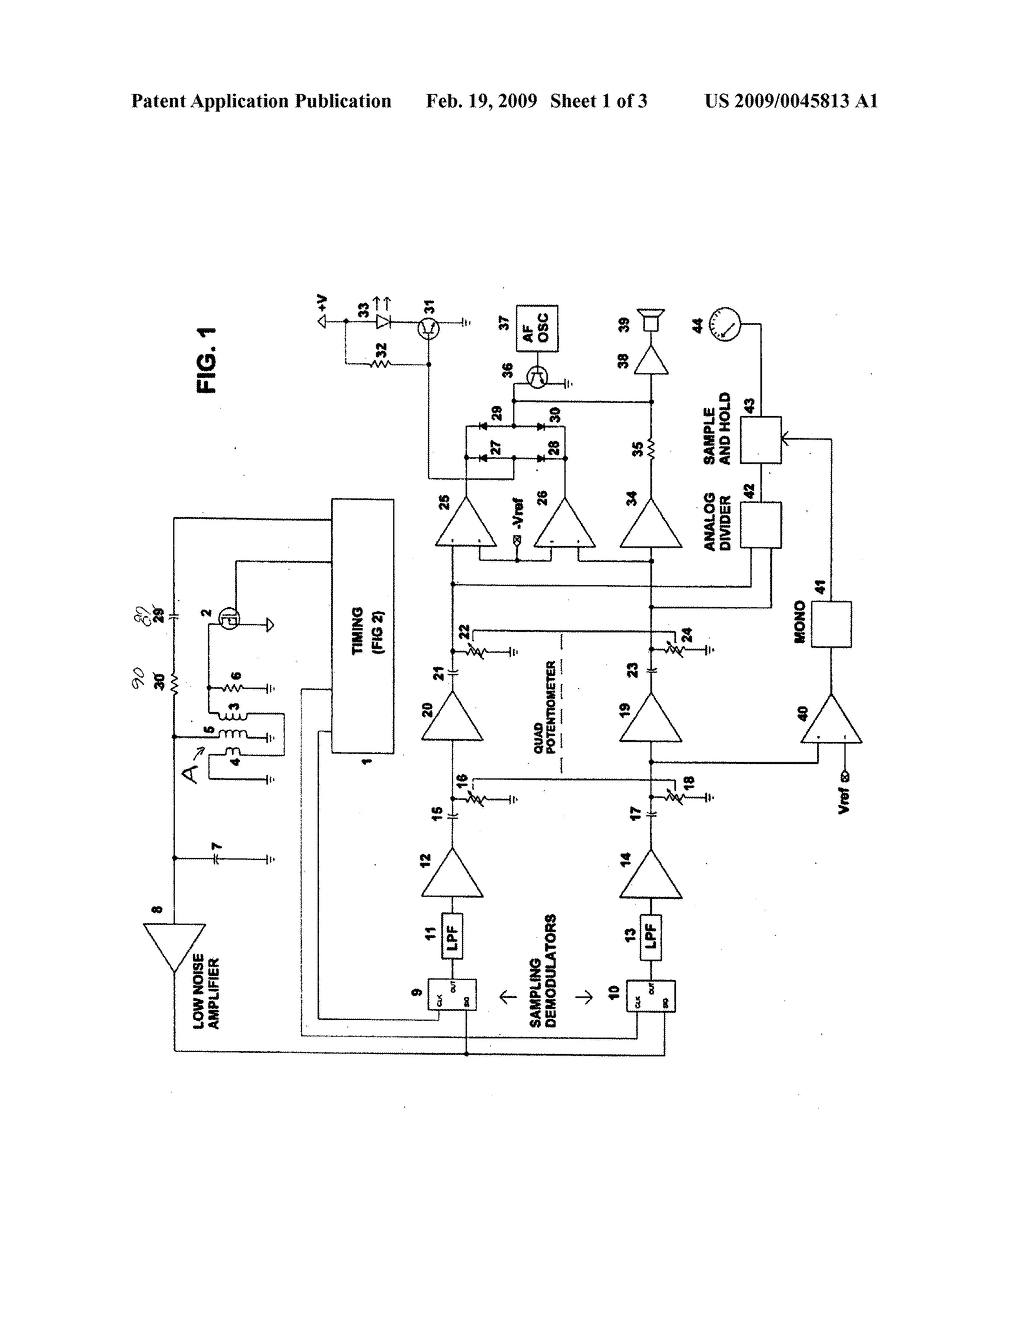 Pulse Induction Metal Detector Circuit Design Wiring Diagram A Simple Bfo Resonant Schematic And Rh Patentsencyclopedia Com Boards Build